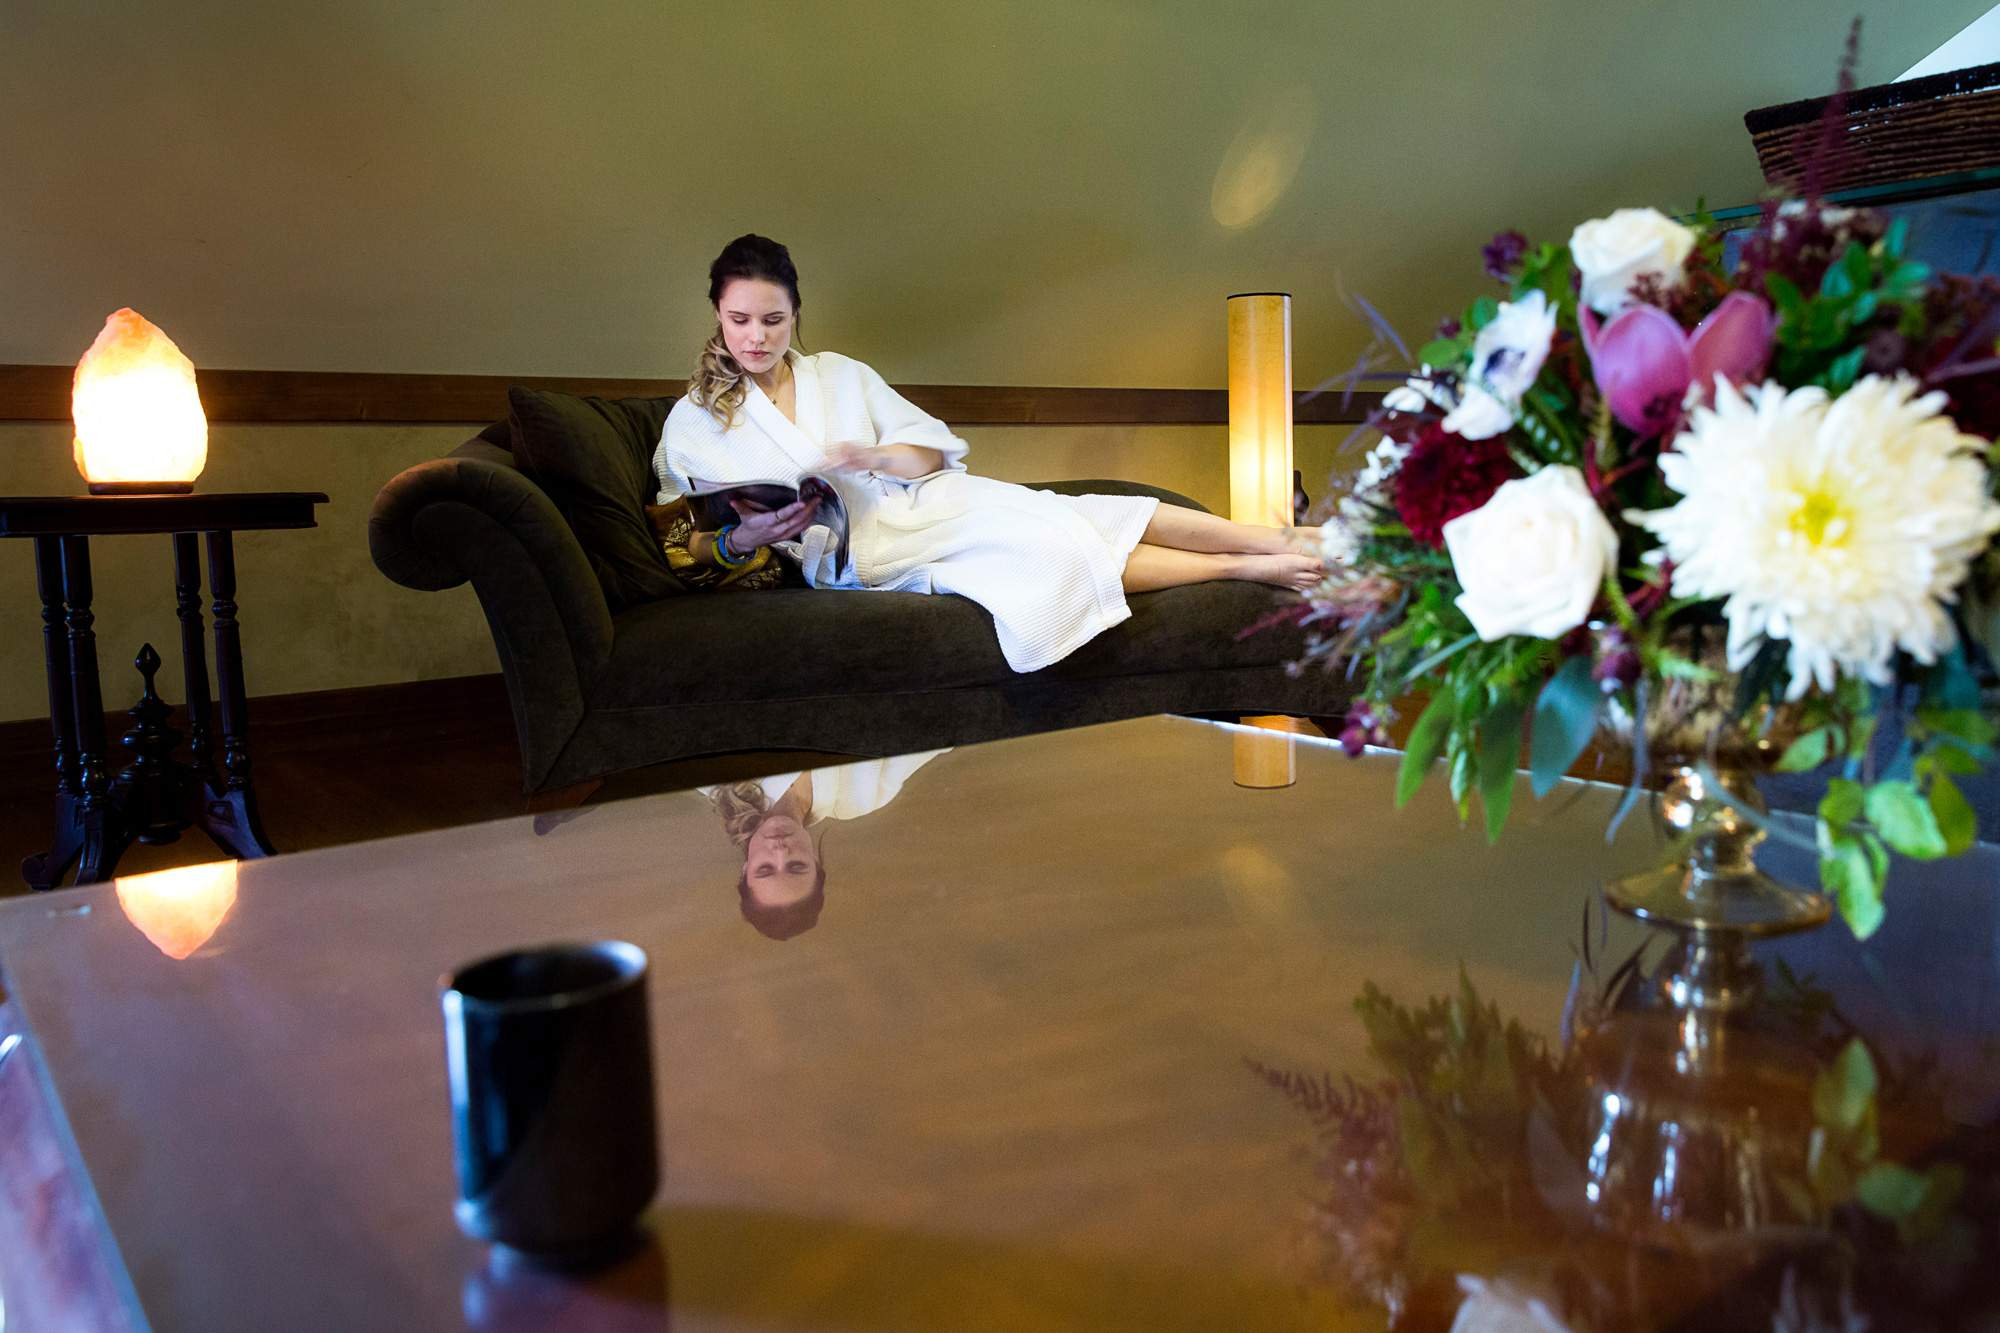 Relax with specially blended Aveda tea - Relaxing Spa Atmosphere - Rapunzel Salon & Spa - Canmore